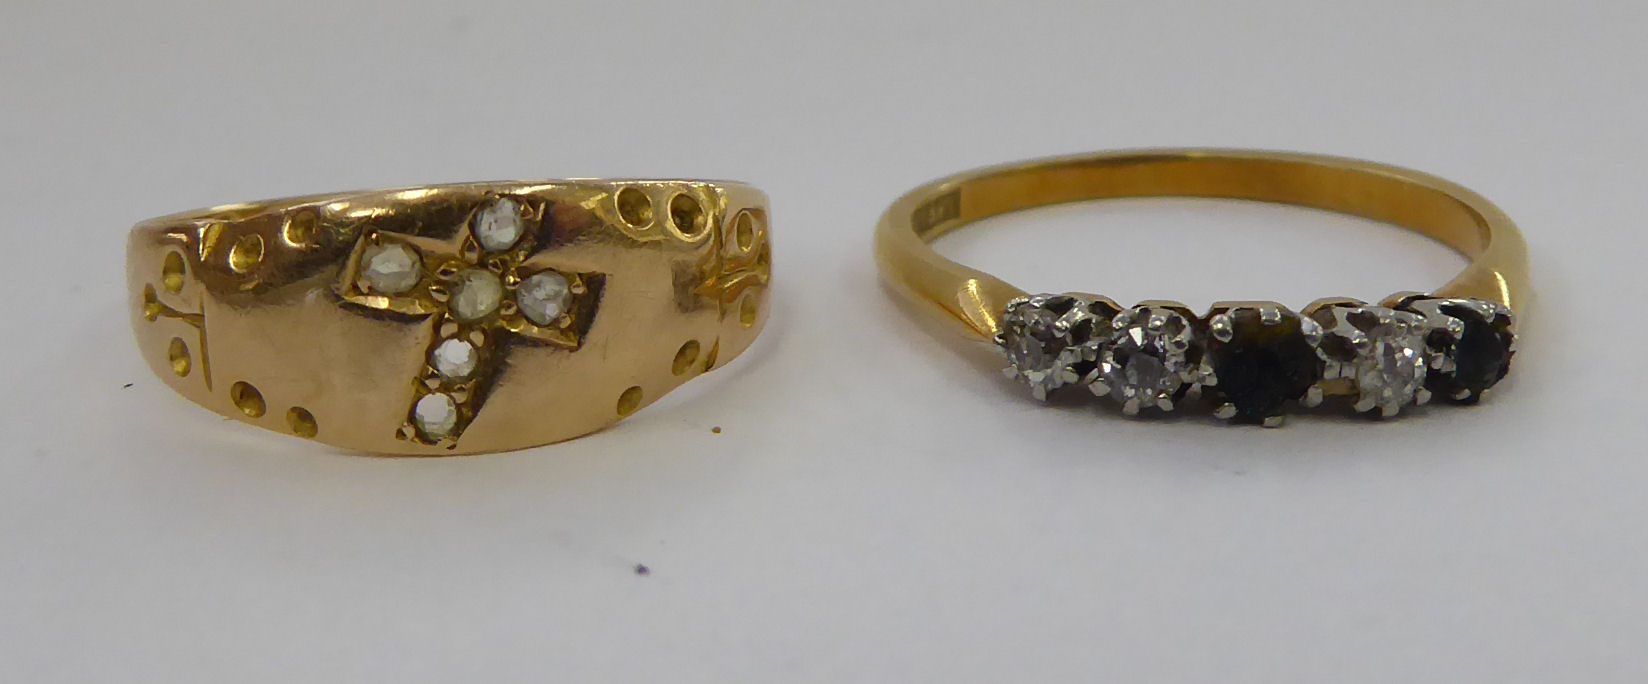 Lot 35 - A 15ct diamond set gold ring, featuring a cross; and an 18ct gold ring,